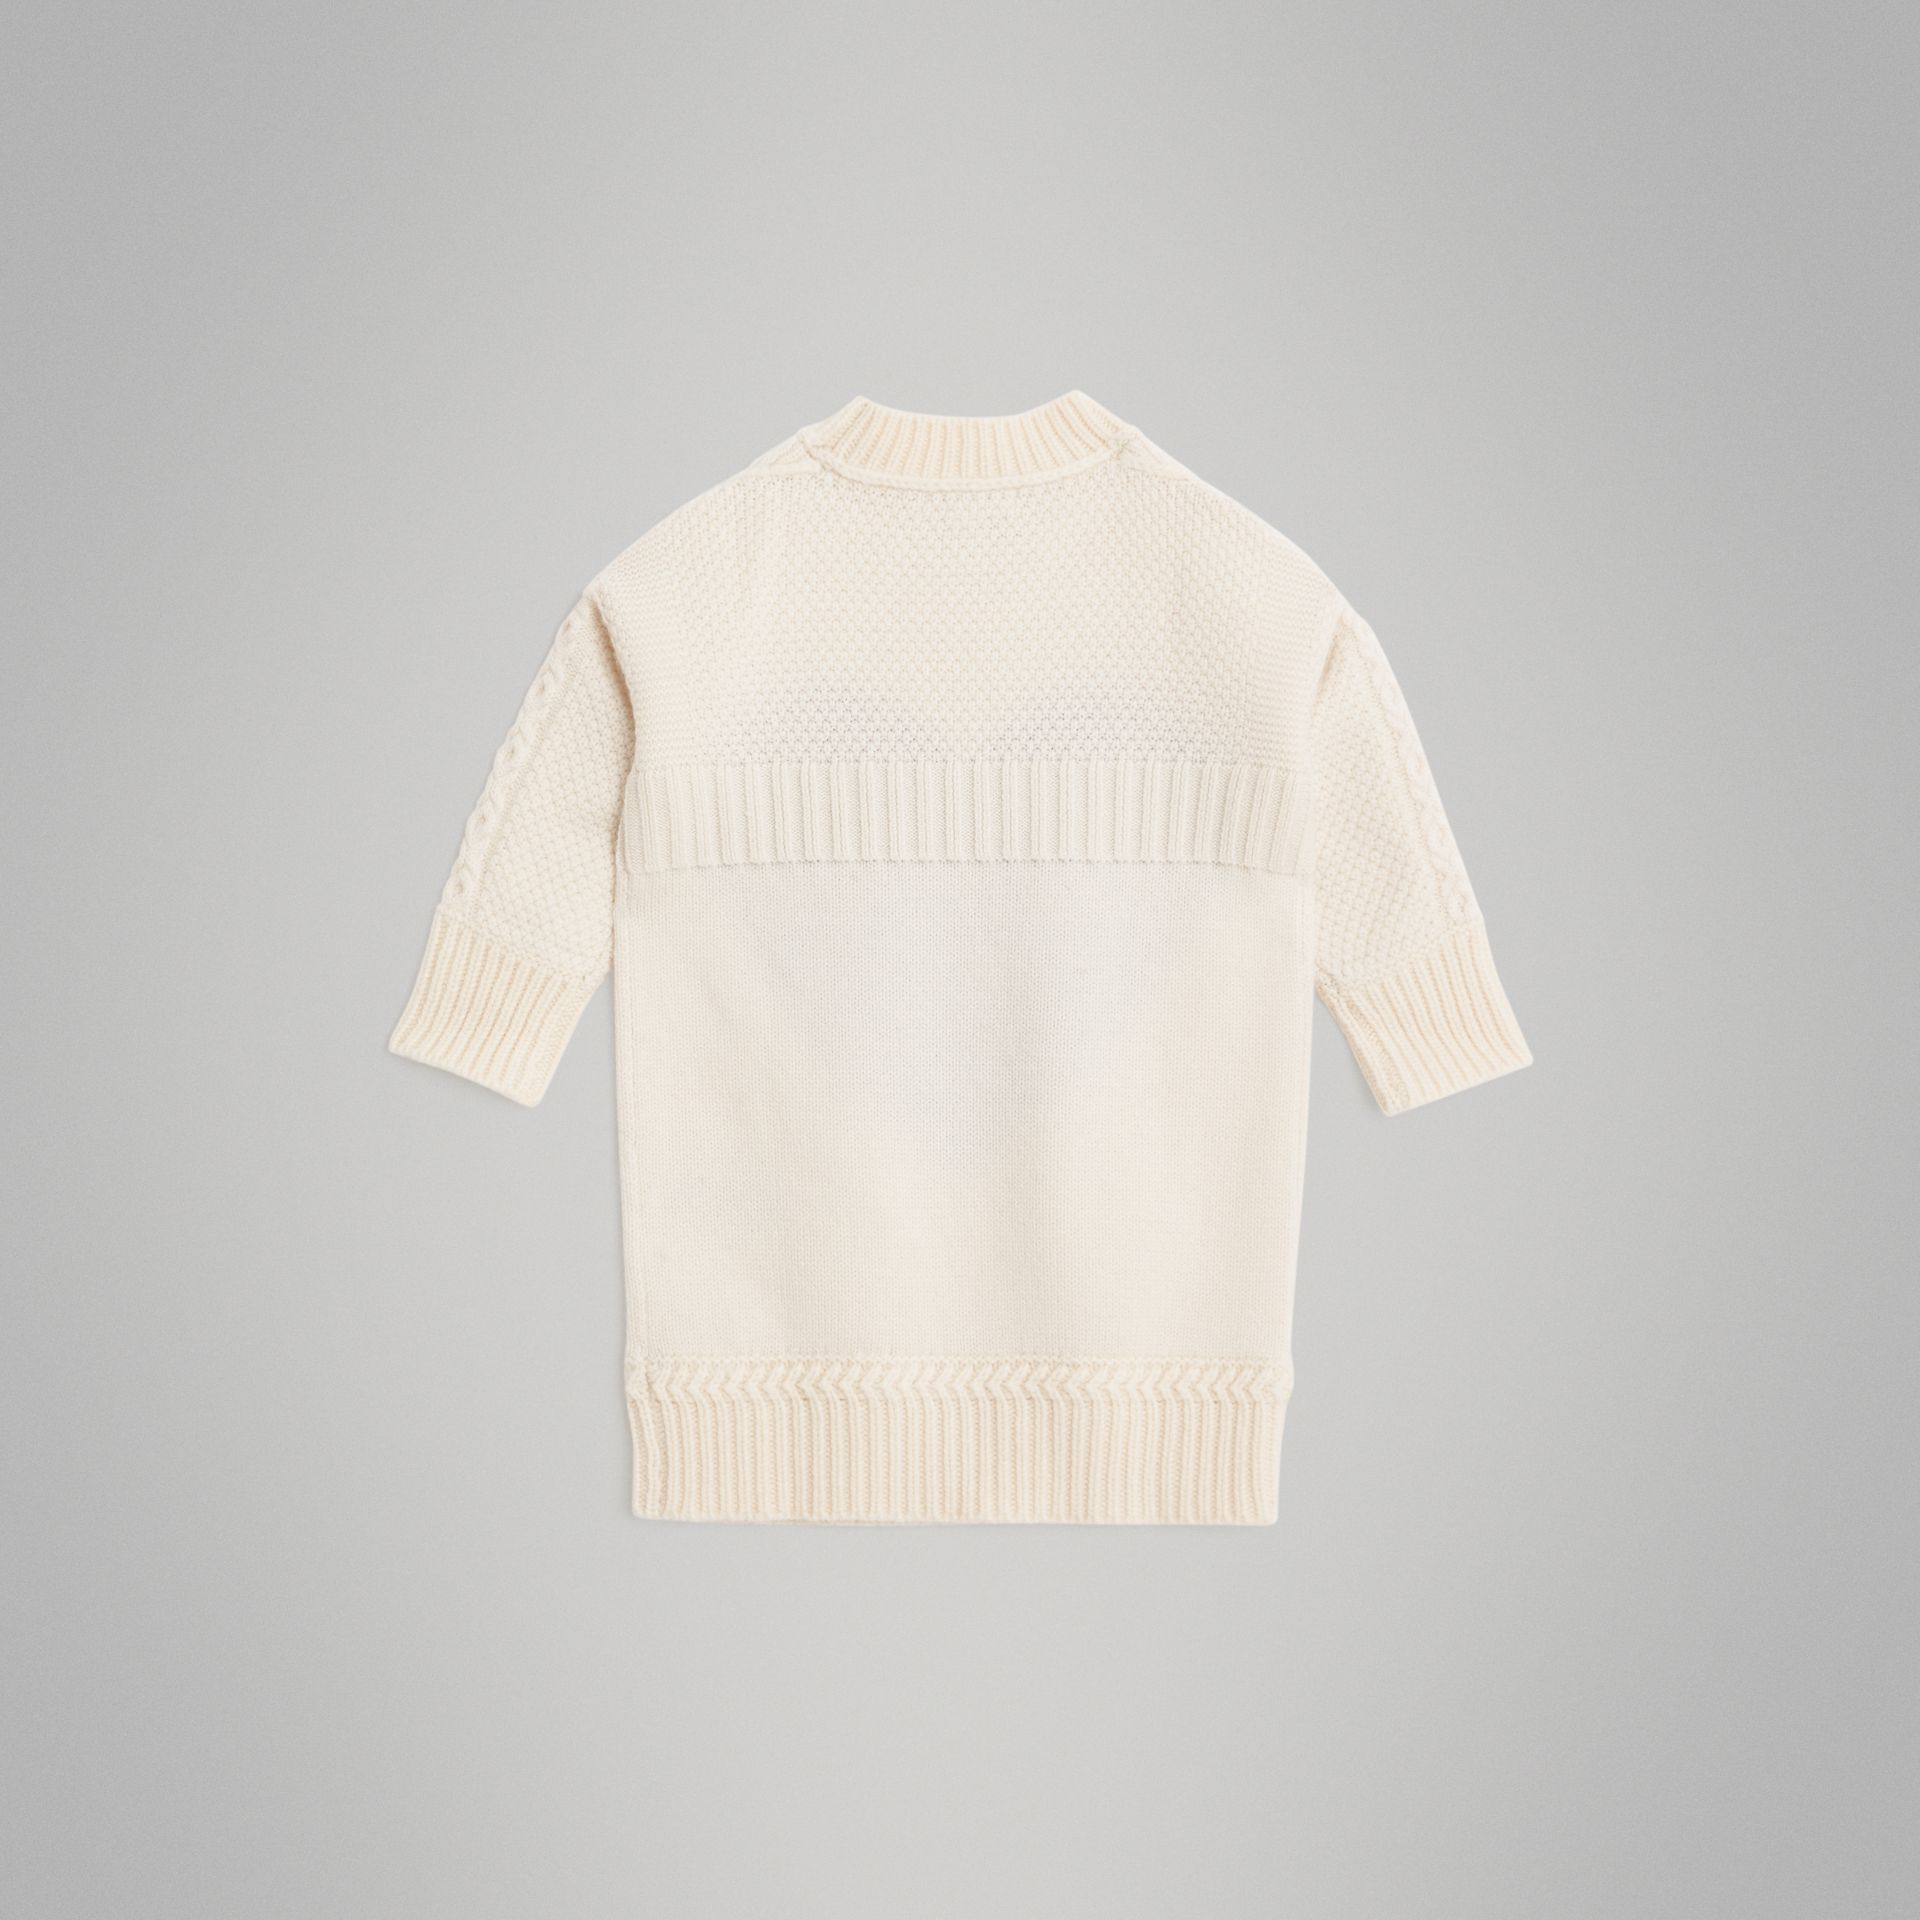 Heart Intarsia Wool Cashmere Sweater Dress in Ivory | Burberry Australia - gallery image 3